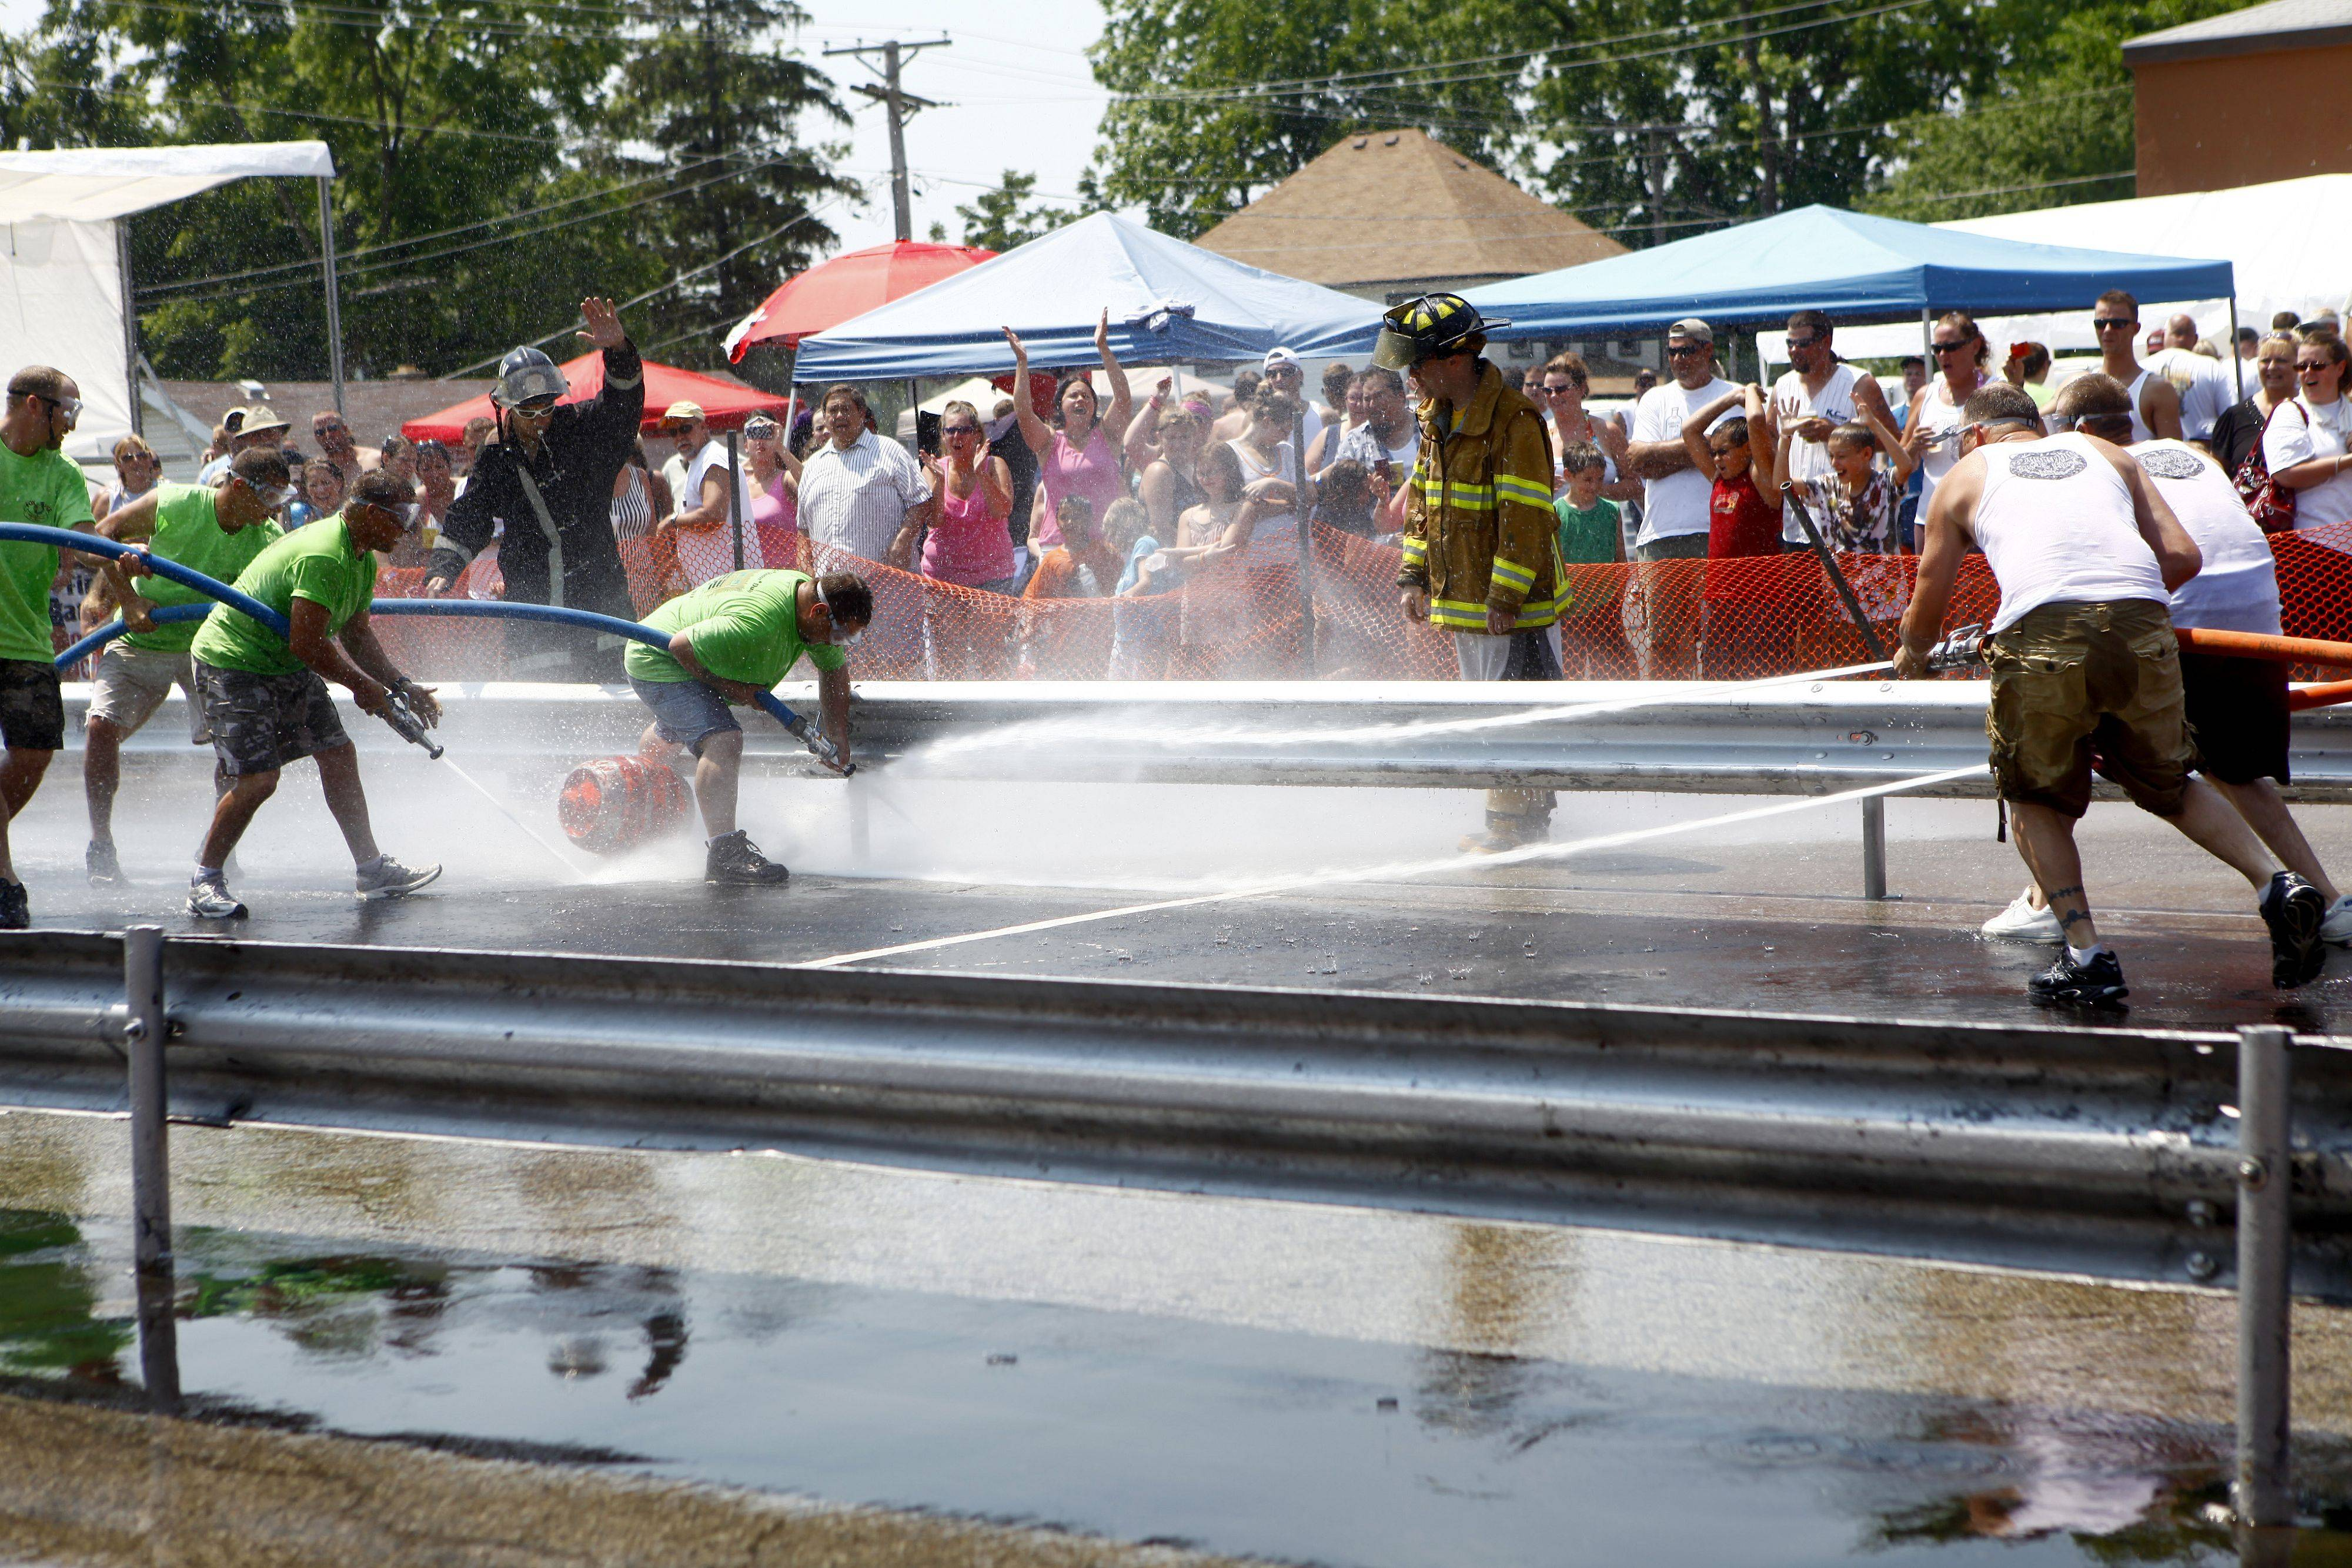 Lake Villa fire fighters referee the water fights at the annual Fireman's festival Sunday afternoon in Fox Lake. The fest went on all day and included food, games and water fights for entertainment.